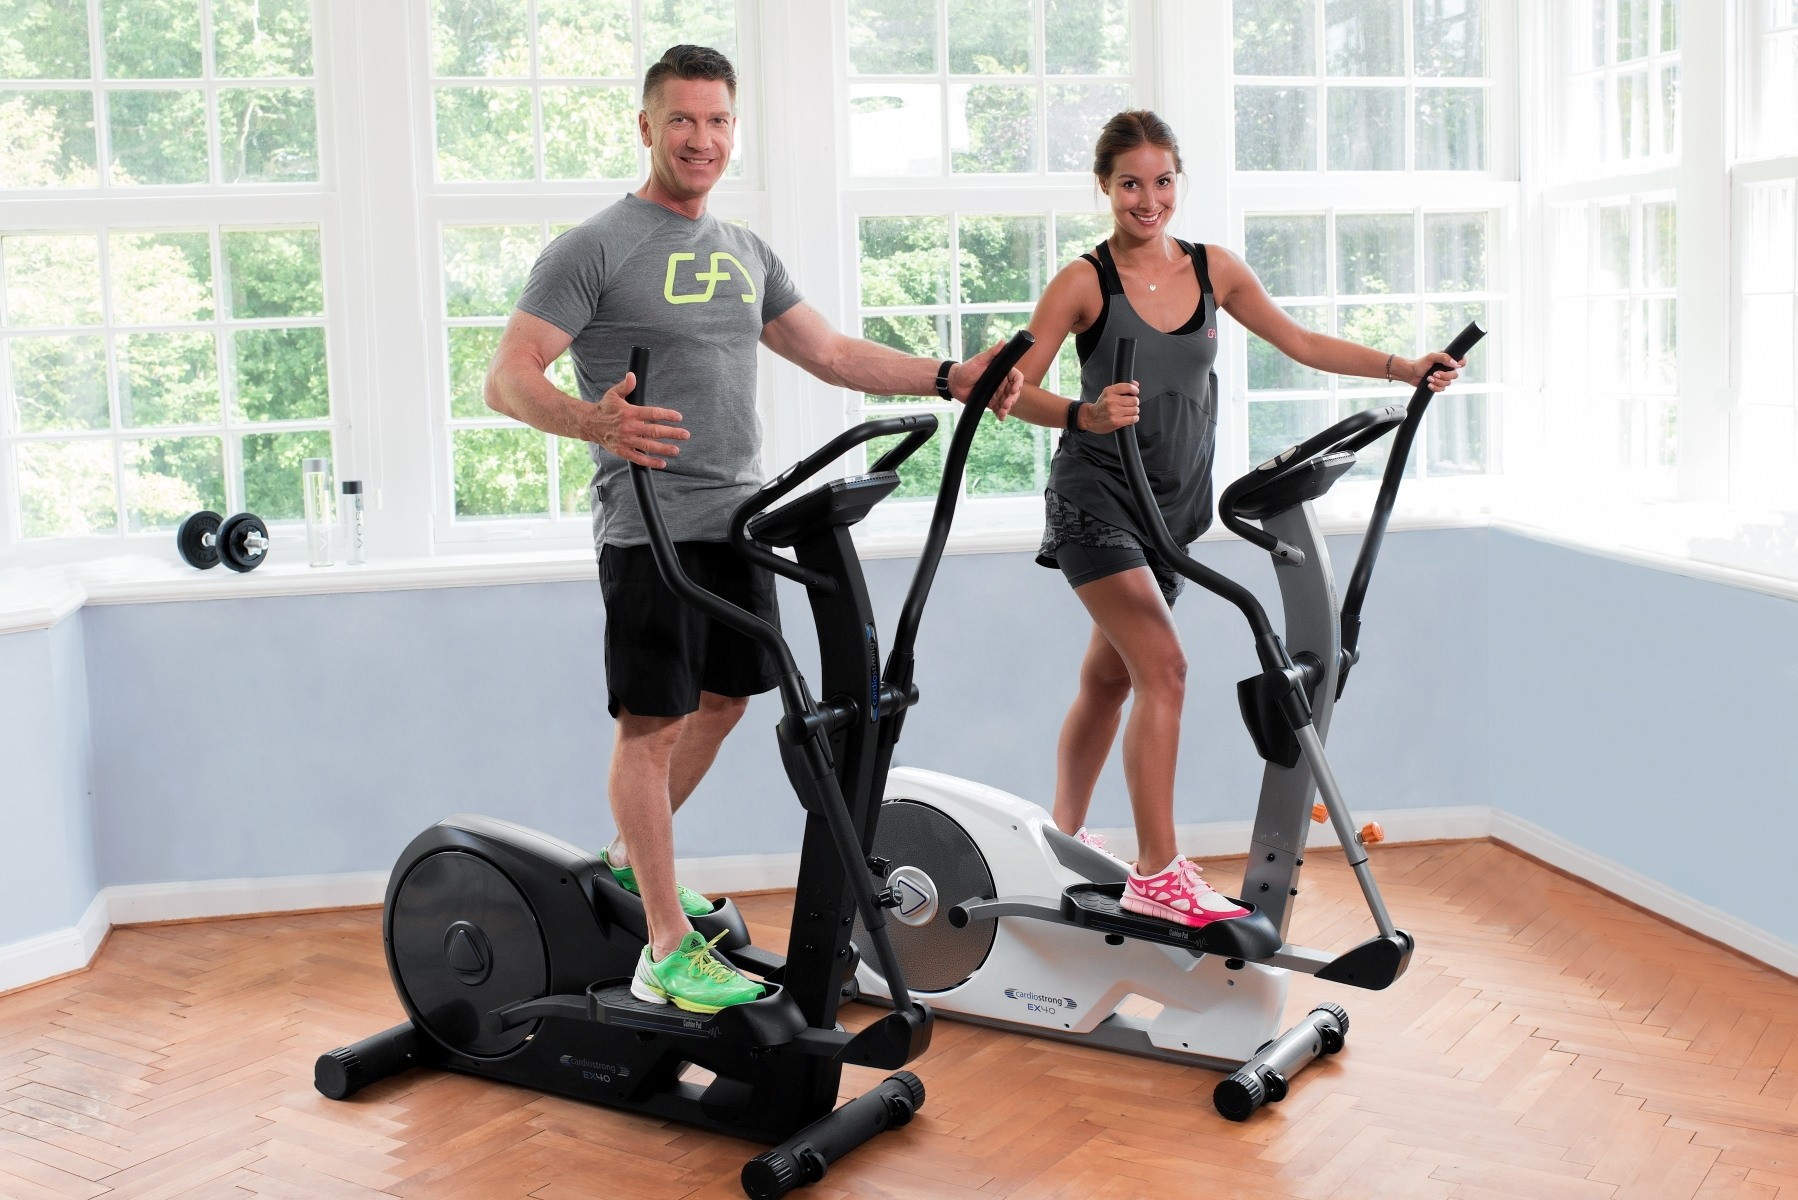 How Elliptical Machines Work